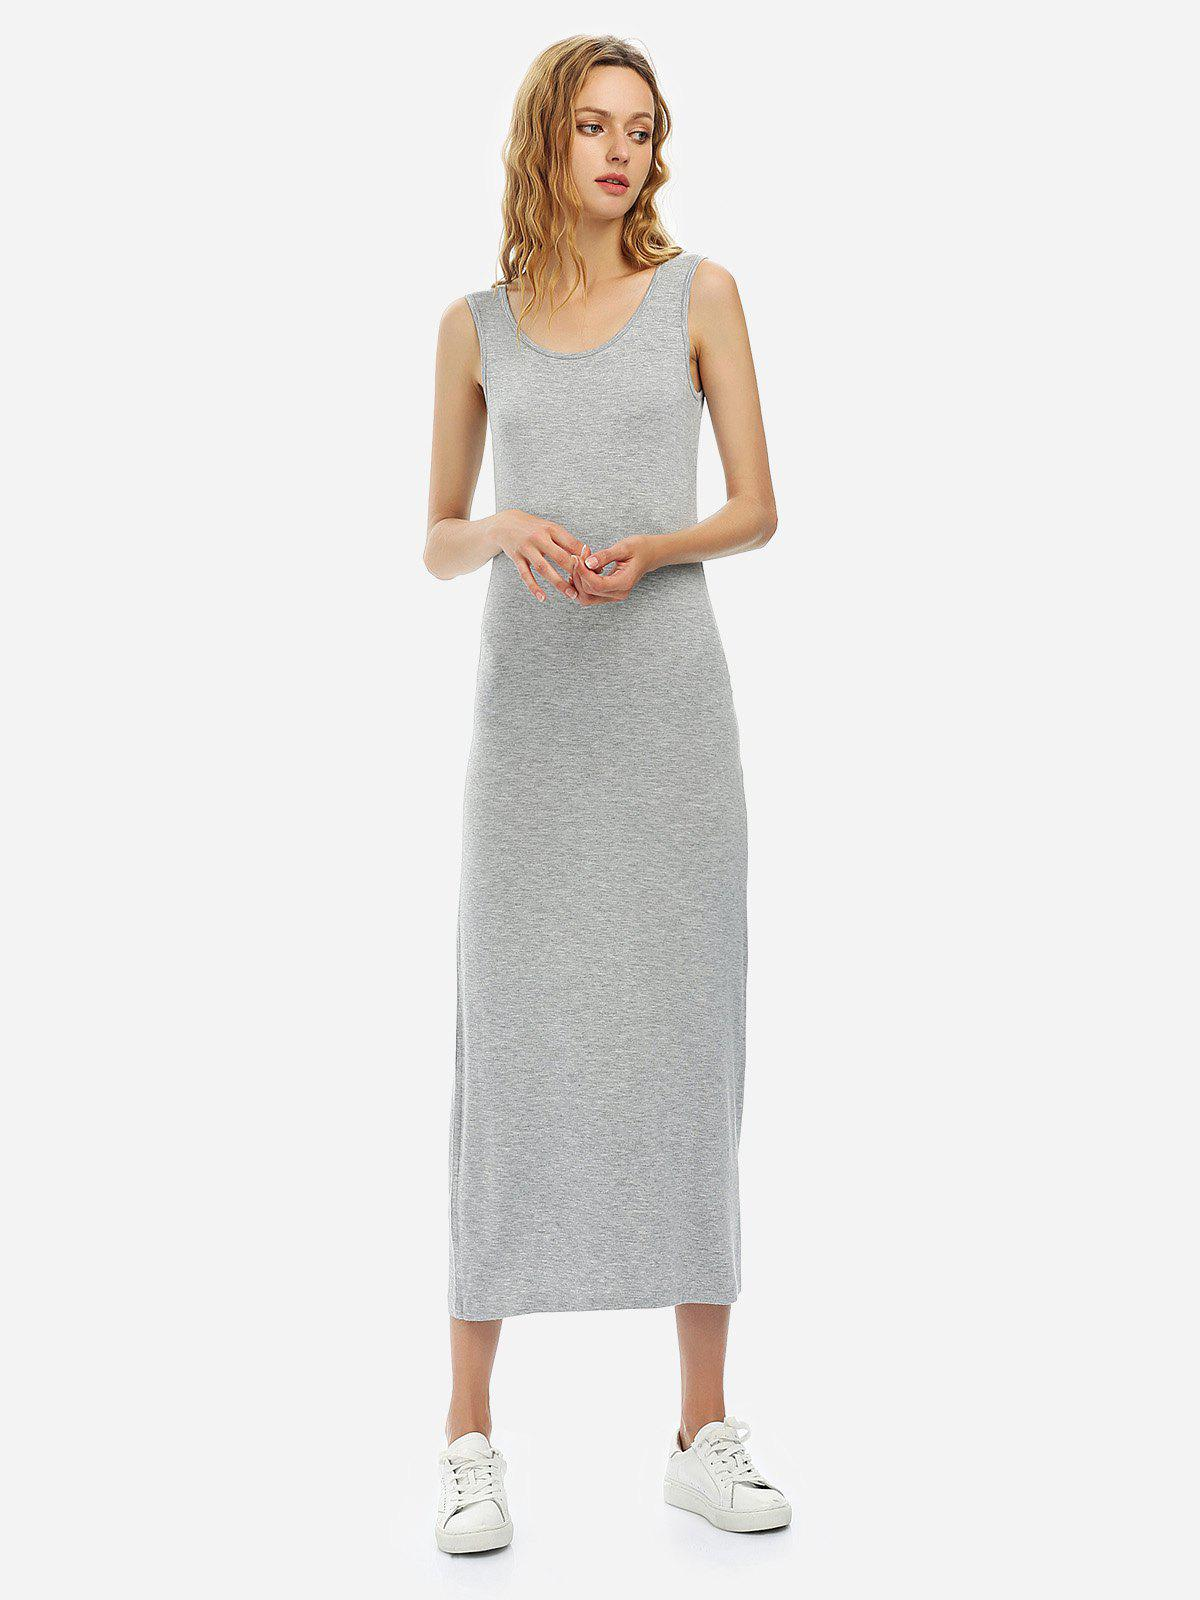 Latest Crew Neck Sleeveless Dress